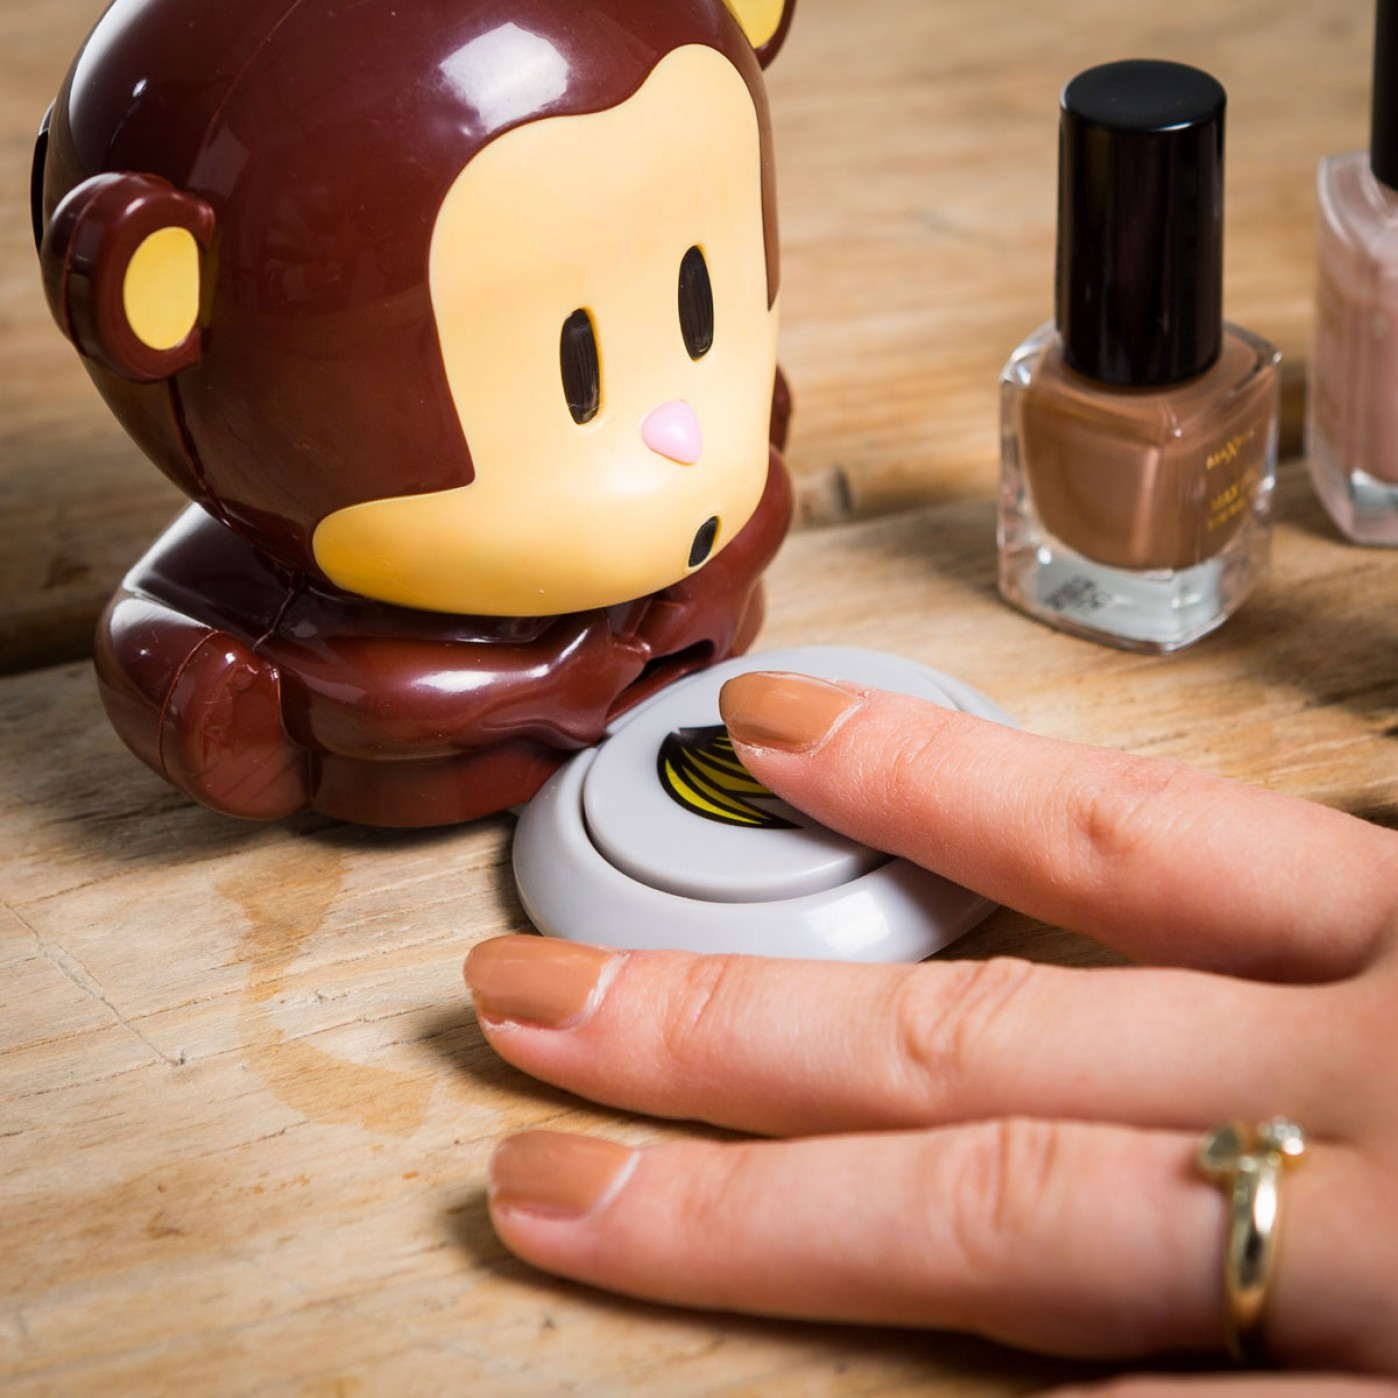 singe-seche-vernis-a-ongles-131